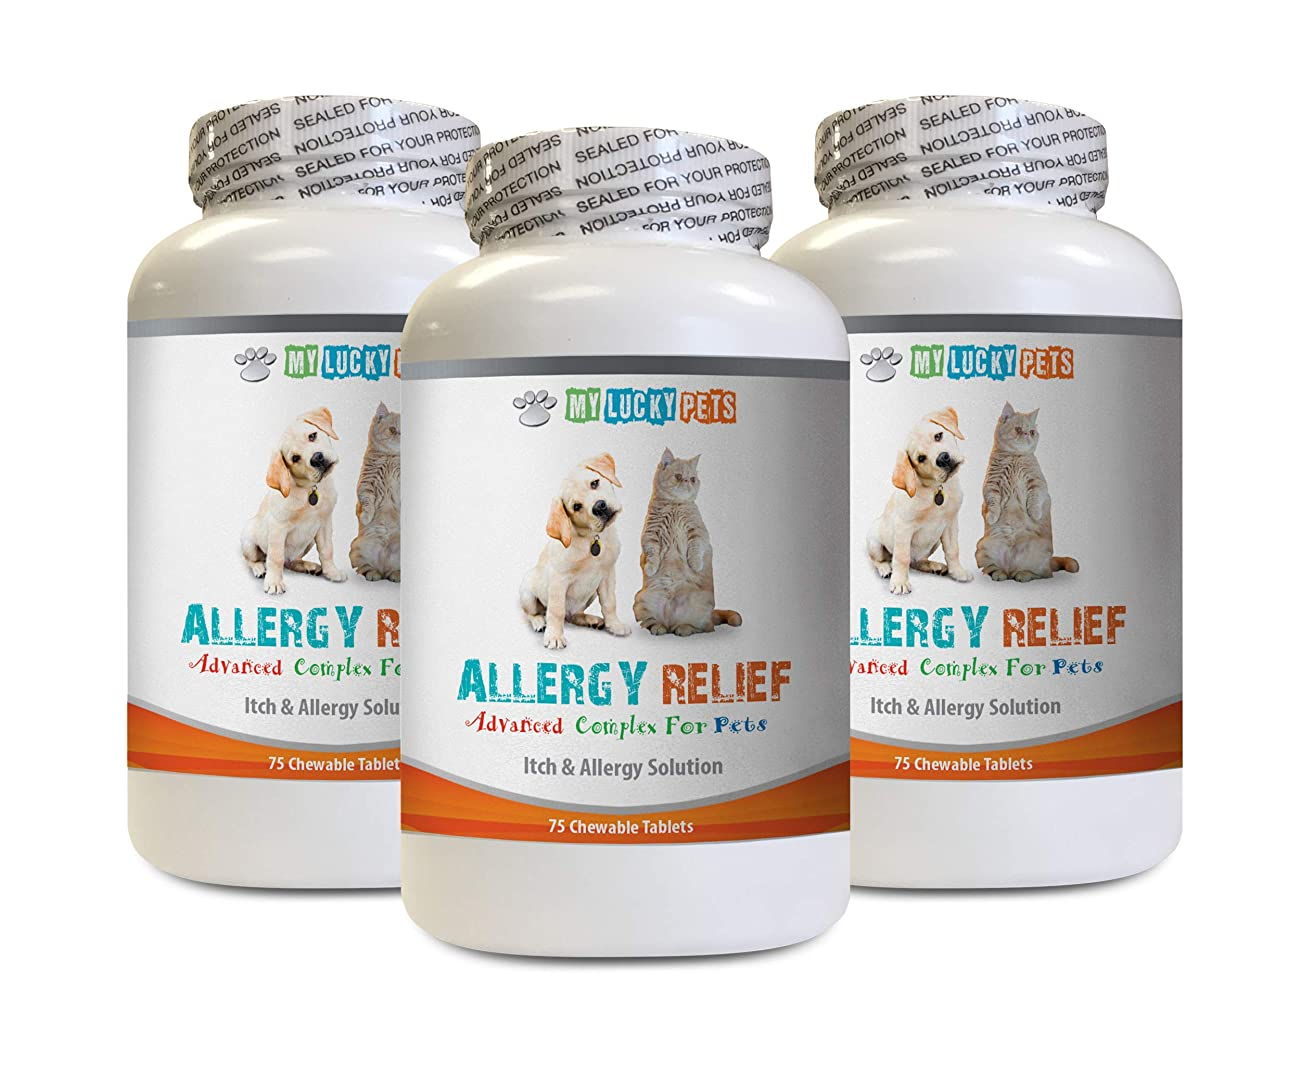 Dog Itchy Skin Relief - PET Allergy Relief - for Dogs and Cats - Lucky Itch Solution - Keep Fur Healthy - Burdock for Dogs - 3 Bottles (225 Chewable Tablets)